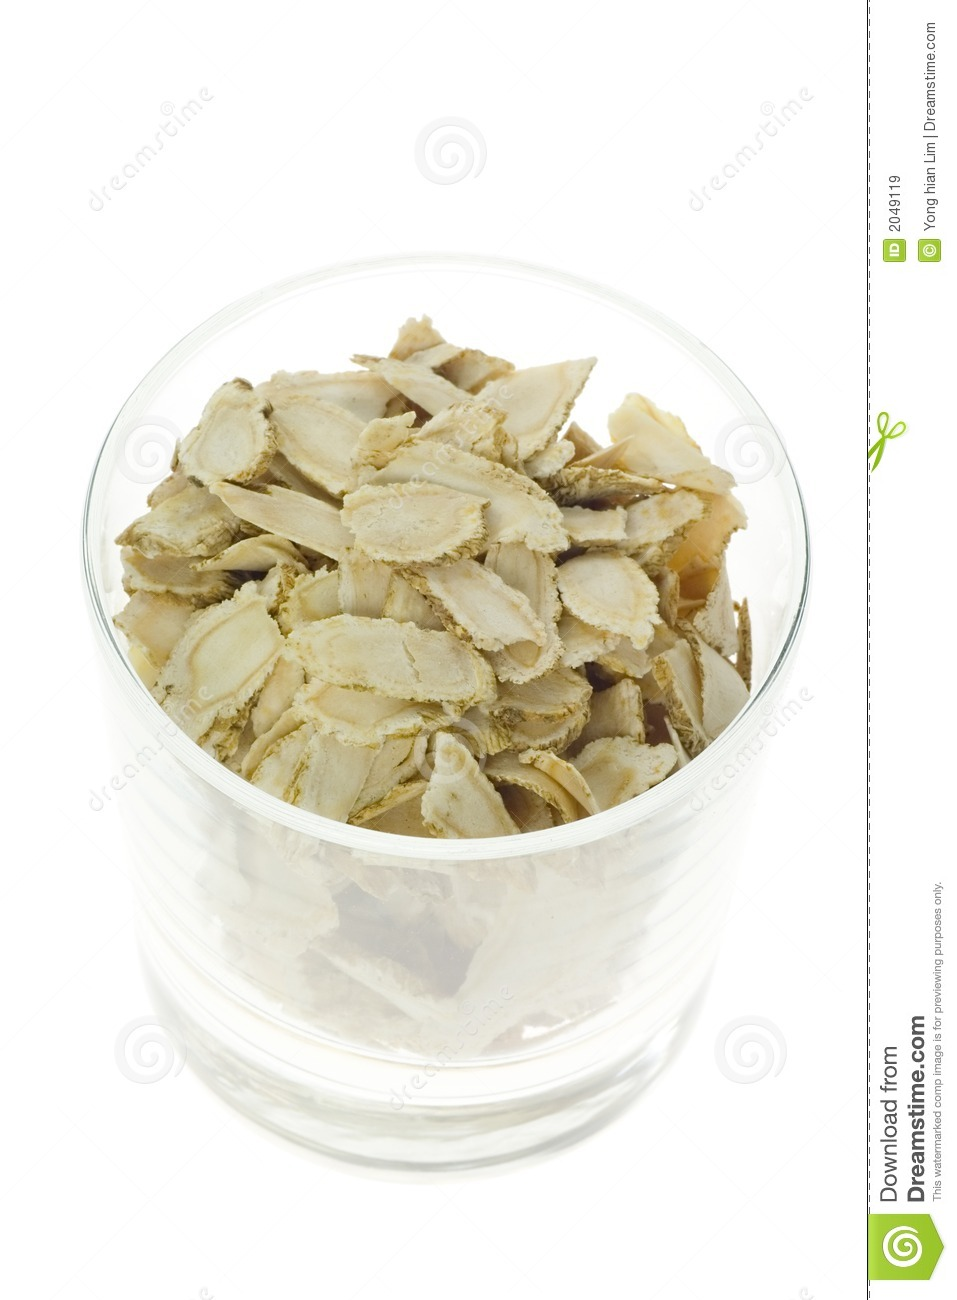 Image Result For What Is The Best Korean Ginseng To Buy